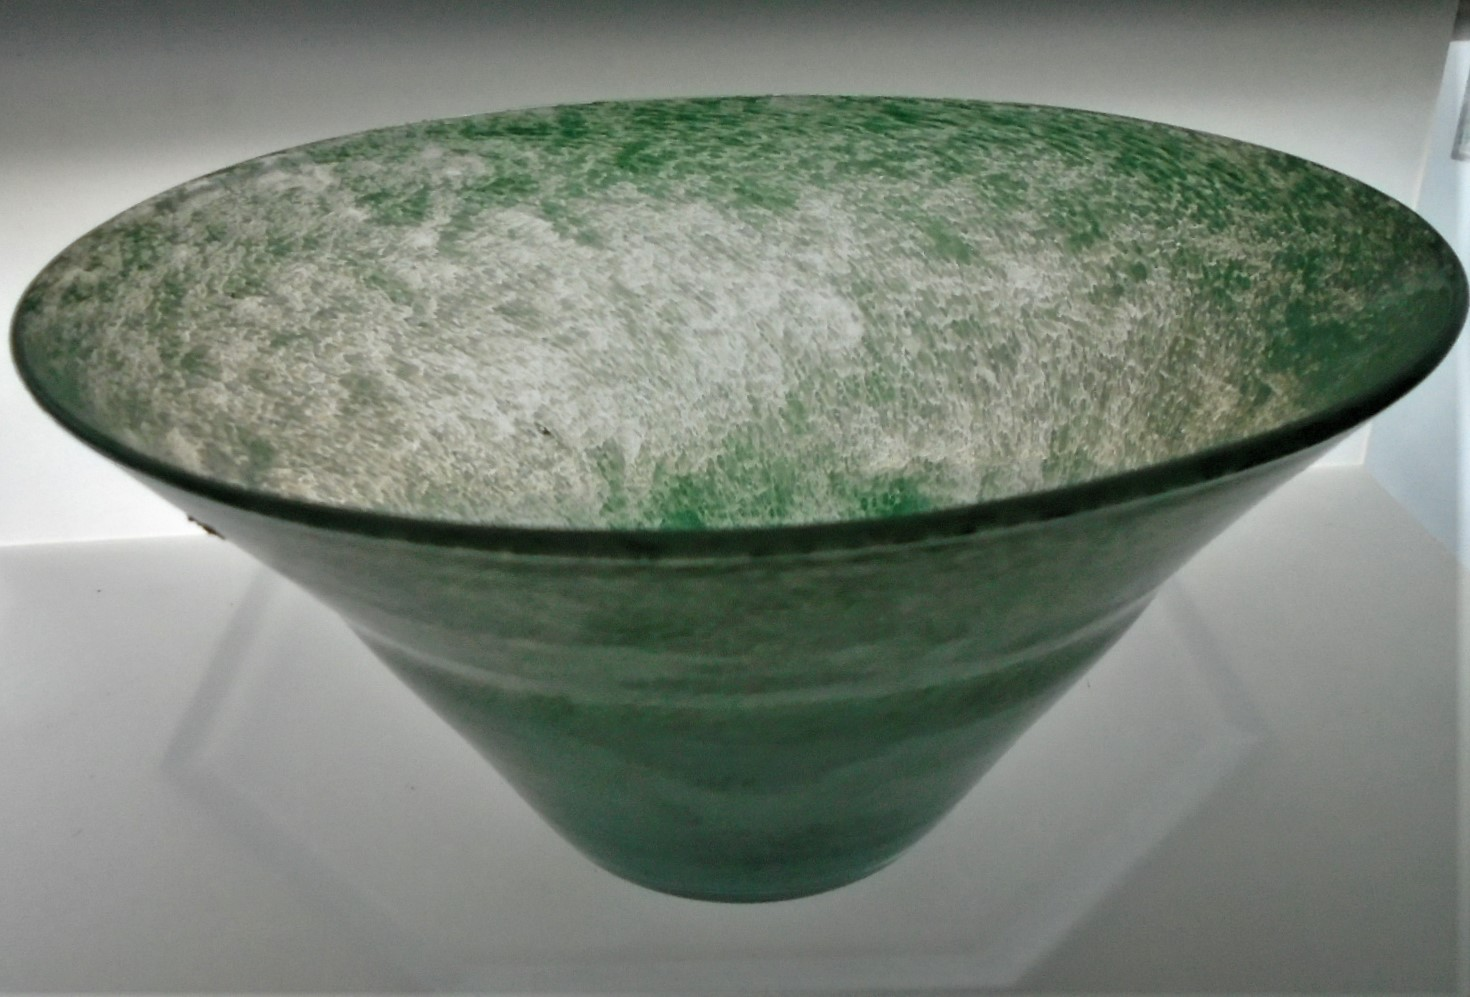 Offered for sale is what I believe to be a vintage 1940s Nazeing Bowl in the May Green cloud swirl pattern